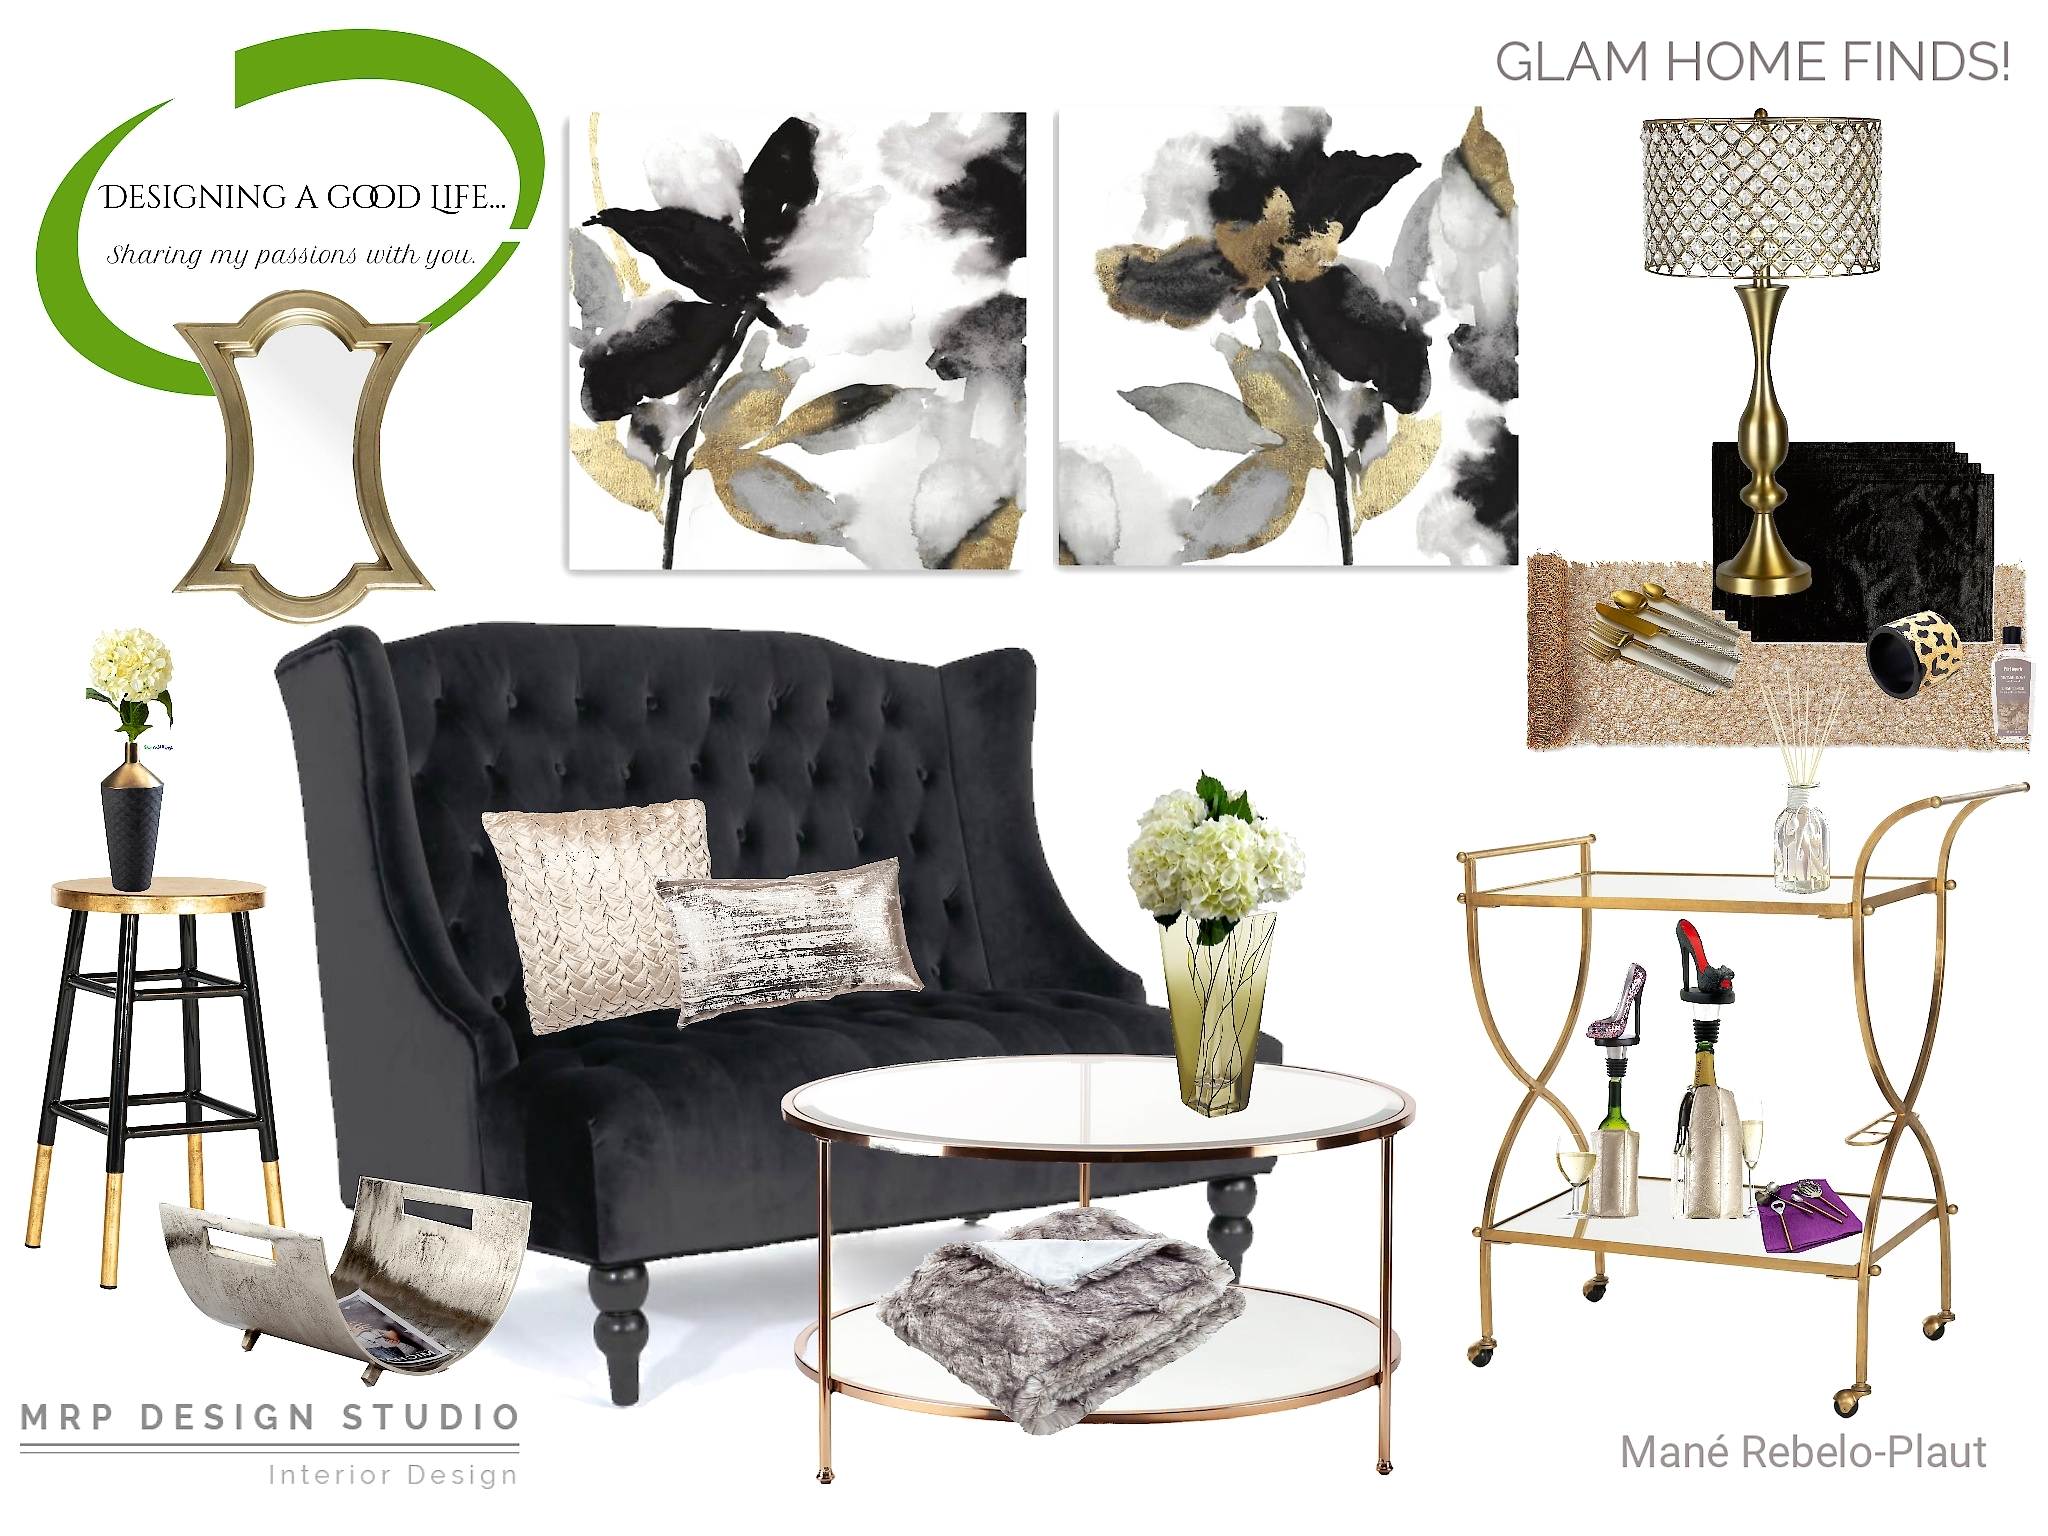 Glam Home Finds!